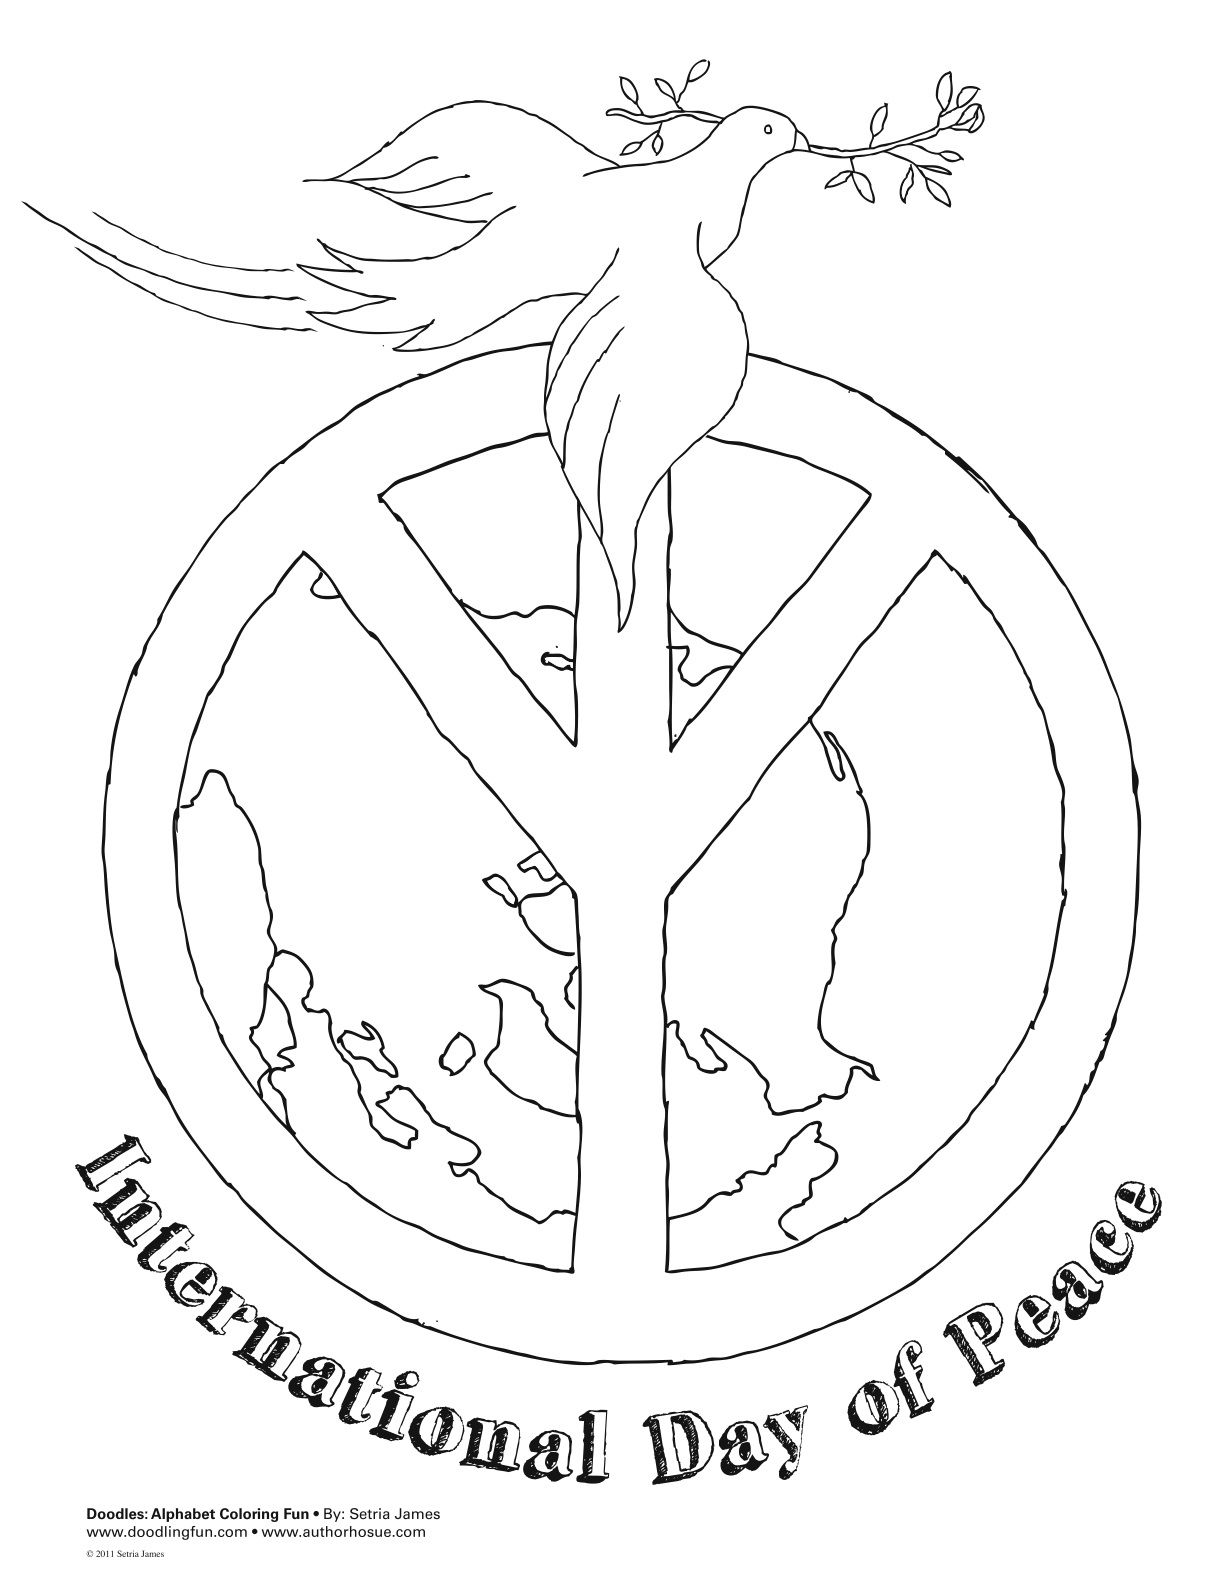 International Day Of Peace Coloring Page